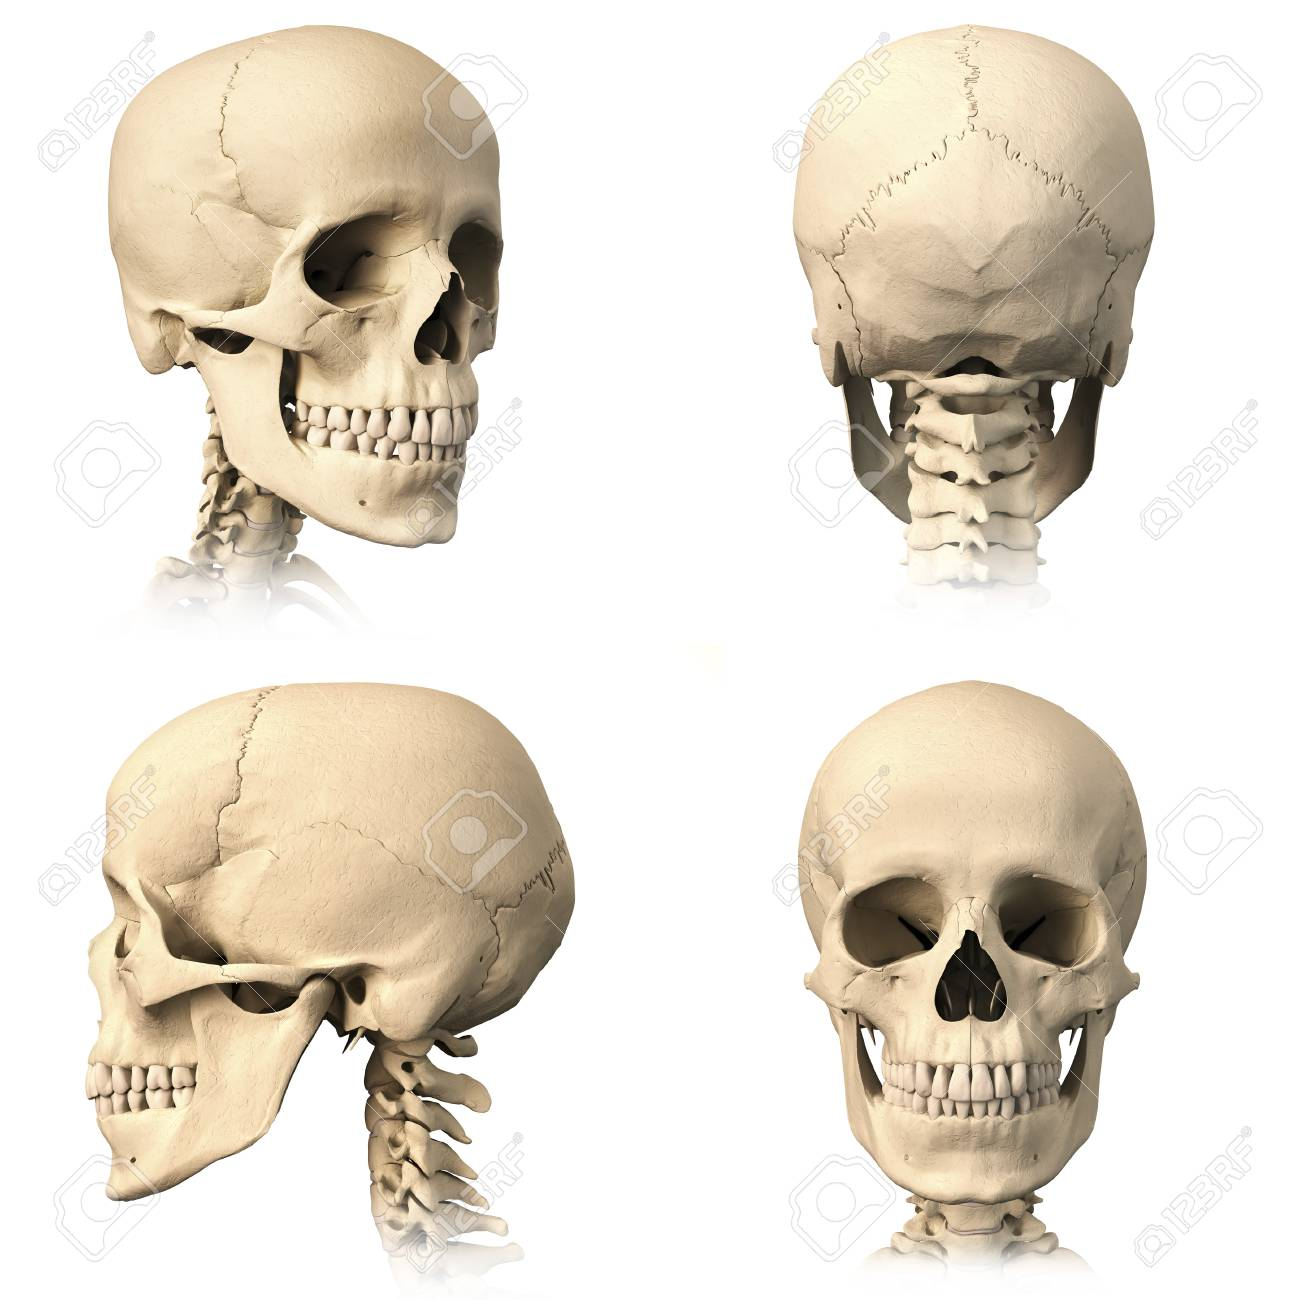 Anatomy Of Human Skull From Different Angles Stock Photo Picture